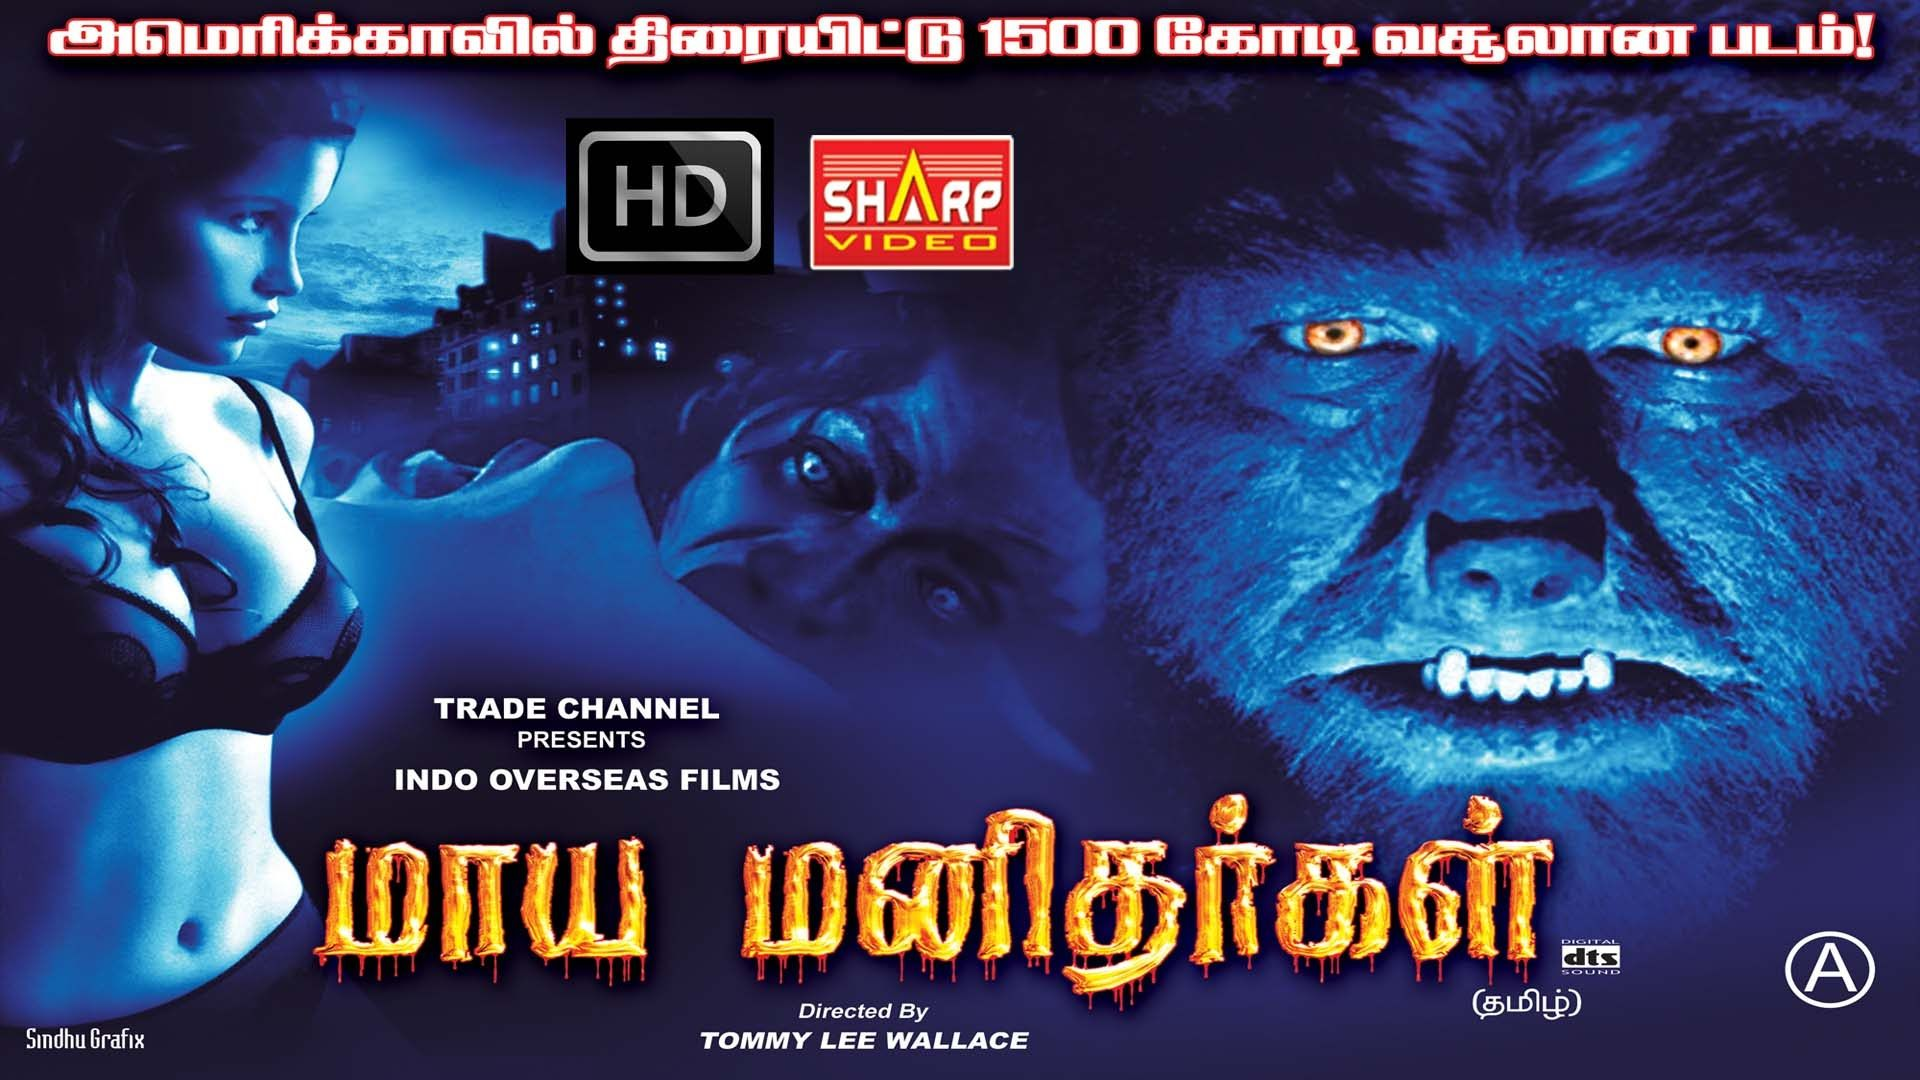 Action Hd Tamil Dubbed Movie Hollywood Tamil Moviemayamanithargaldvd Ghost Movies Action Adventure Dubbed